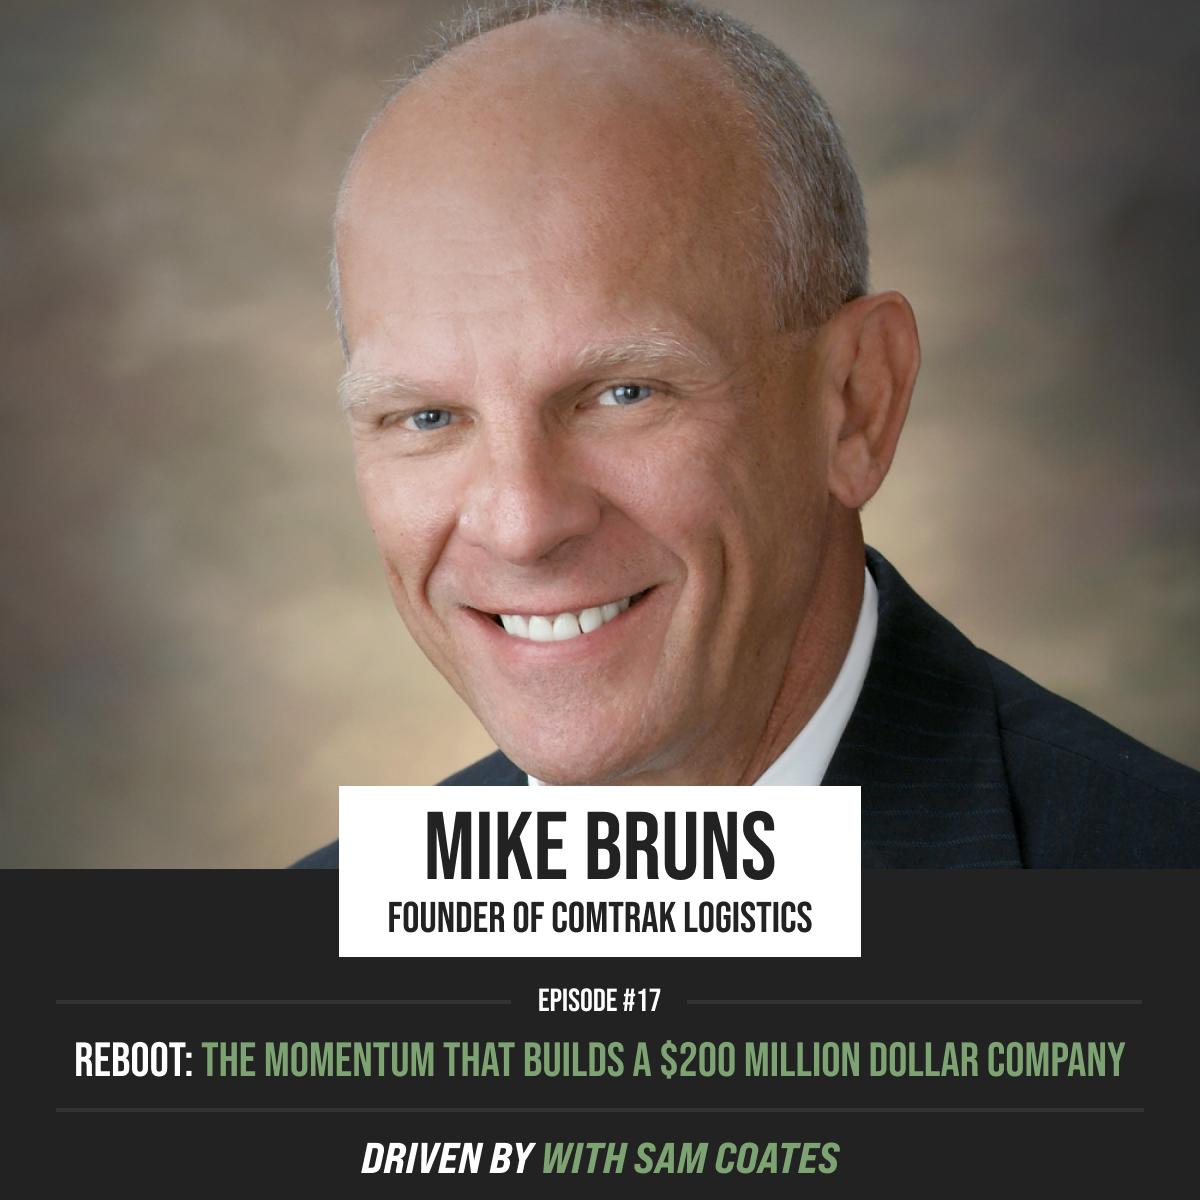 REBOOT: Mike Bruns | The Momentum That Builds a $200 Million Dollar Company